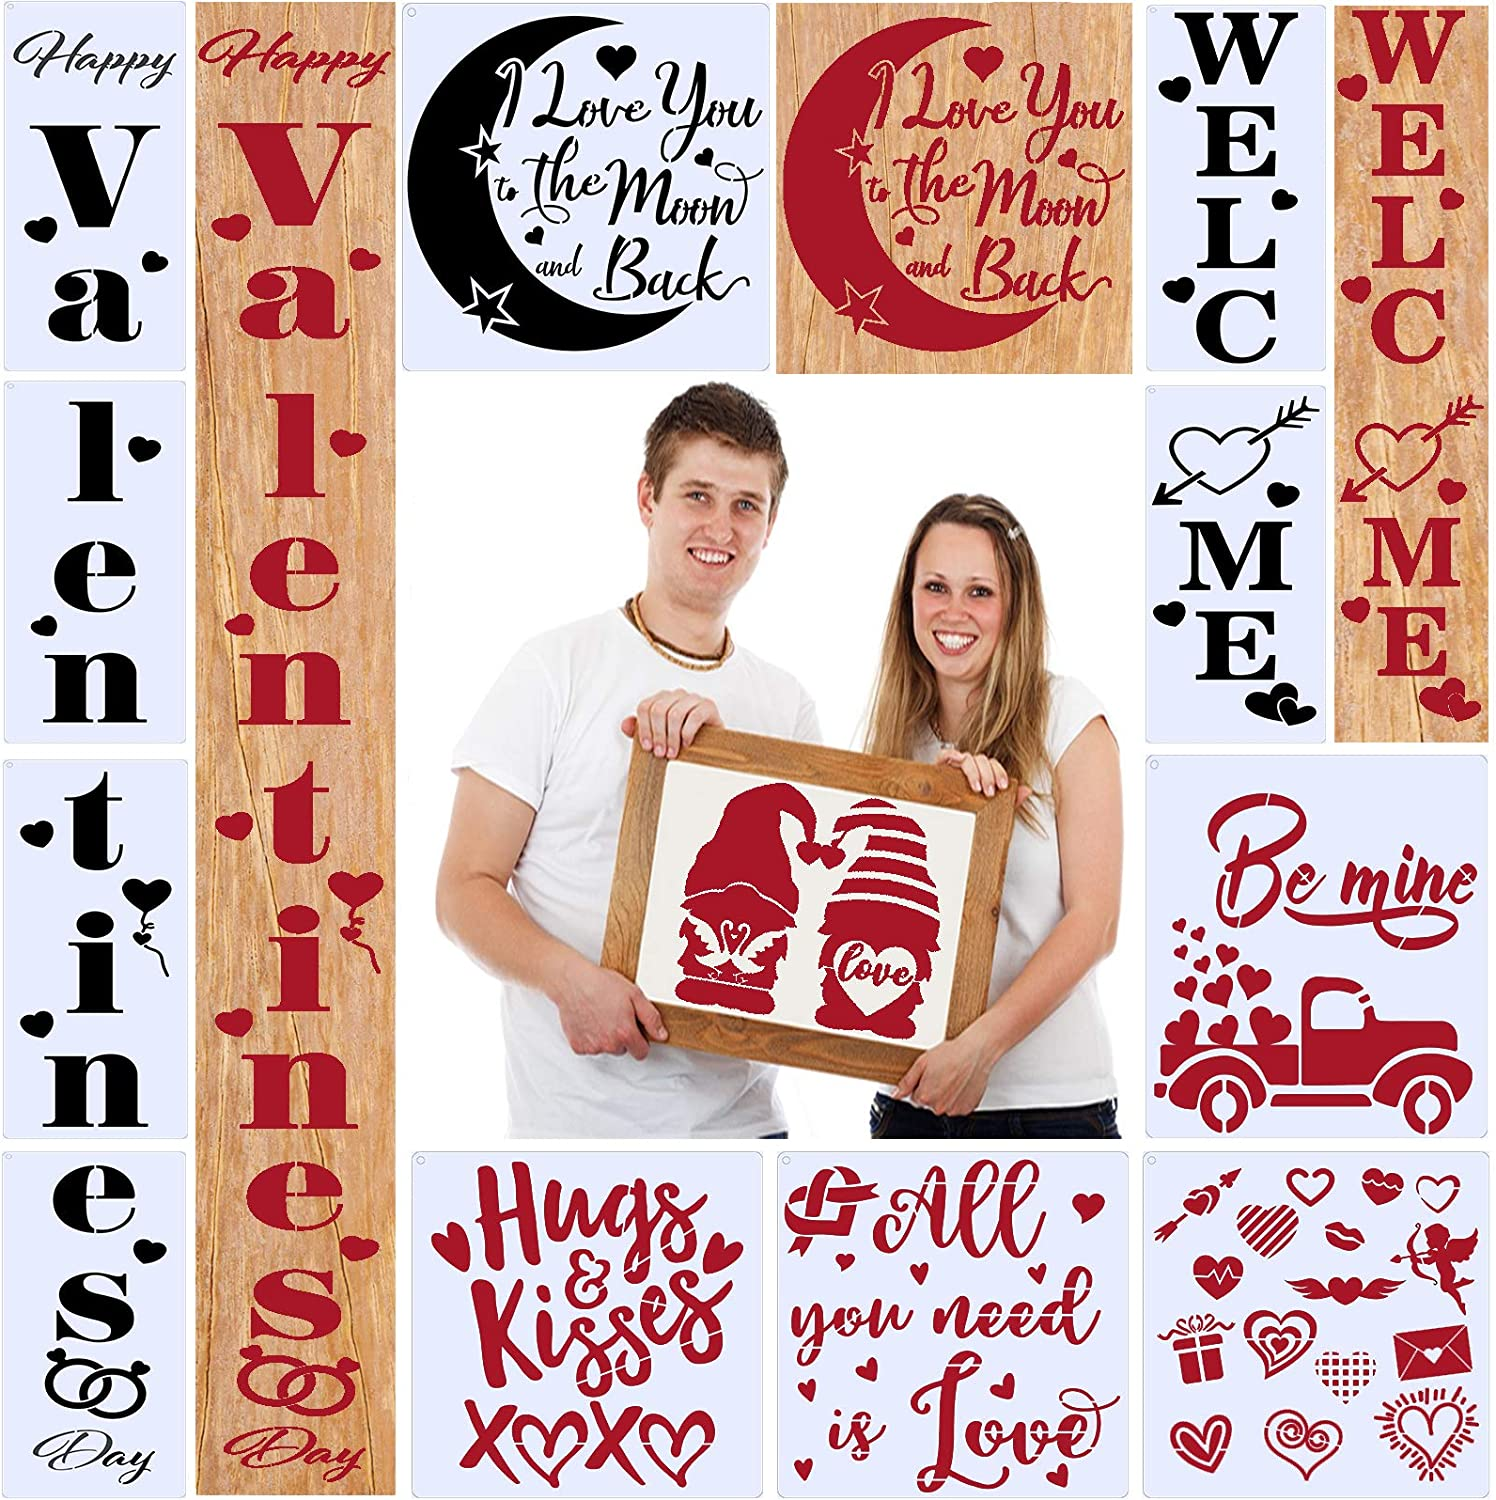 Valentine's Day Stencils for Painting on Wood Reusable,Vertical Welcome Valentine's Sign for Front Door Outside Porch Decor with XOXO Valentine's Gnome Sign(13PCS)